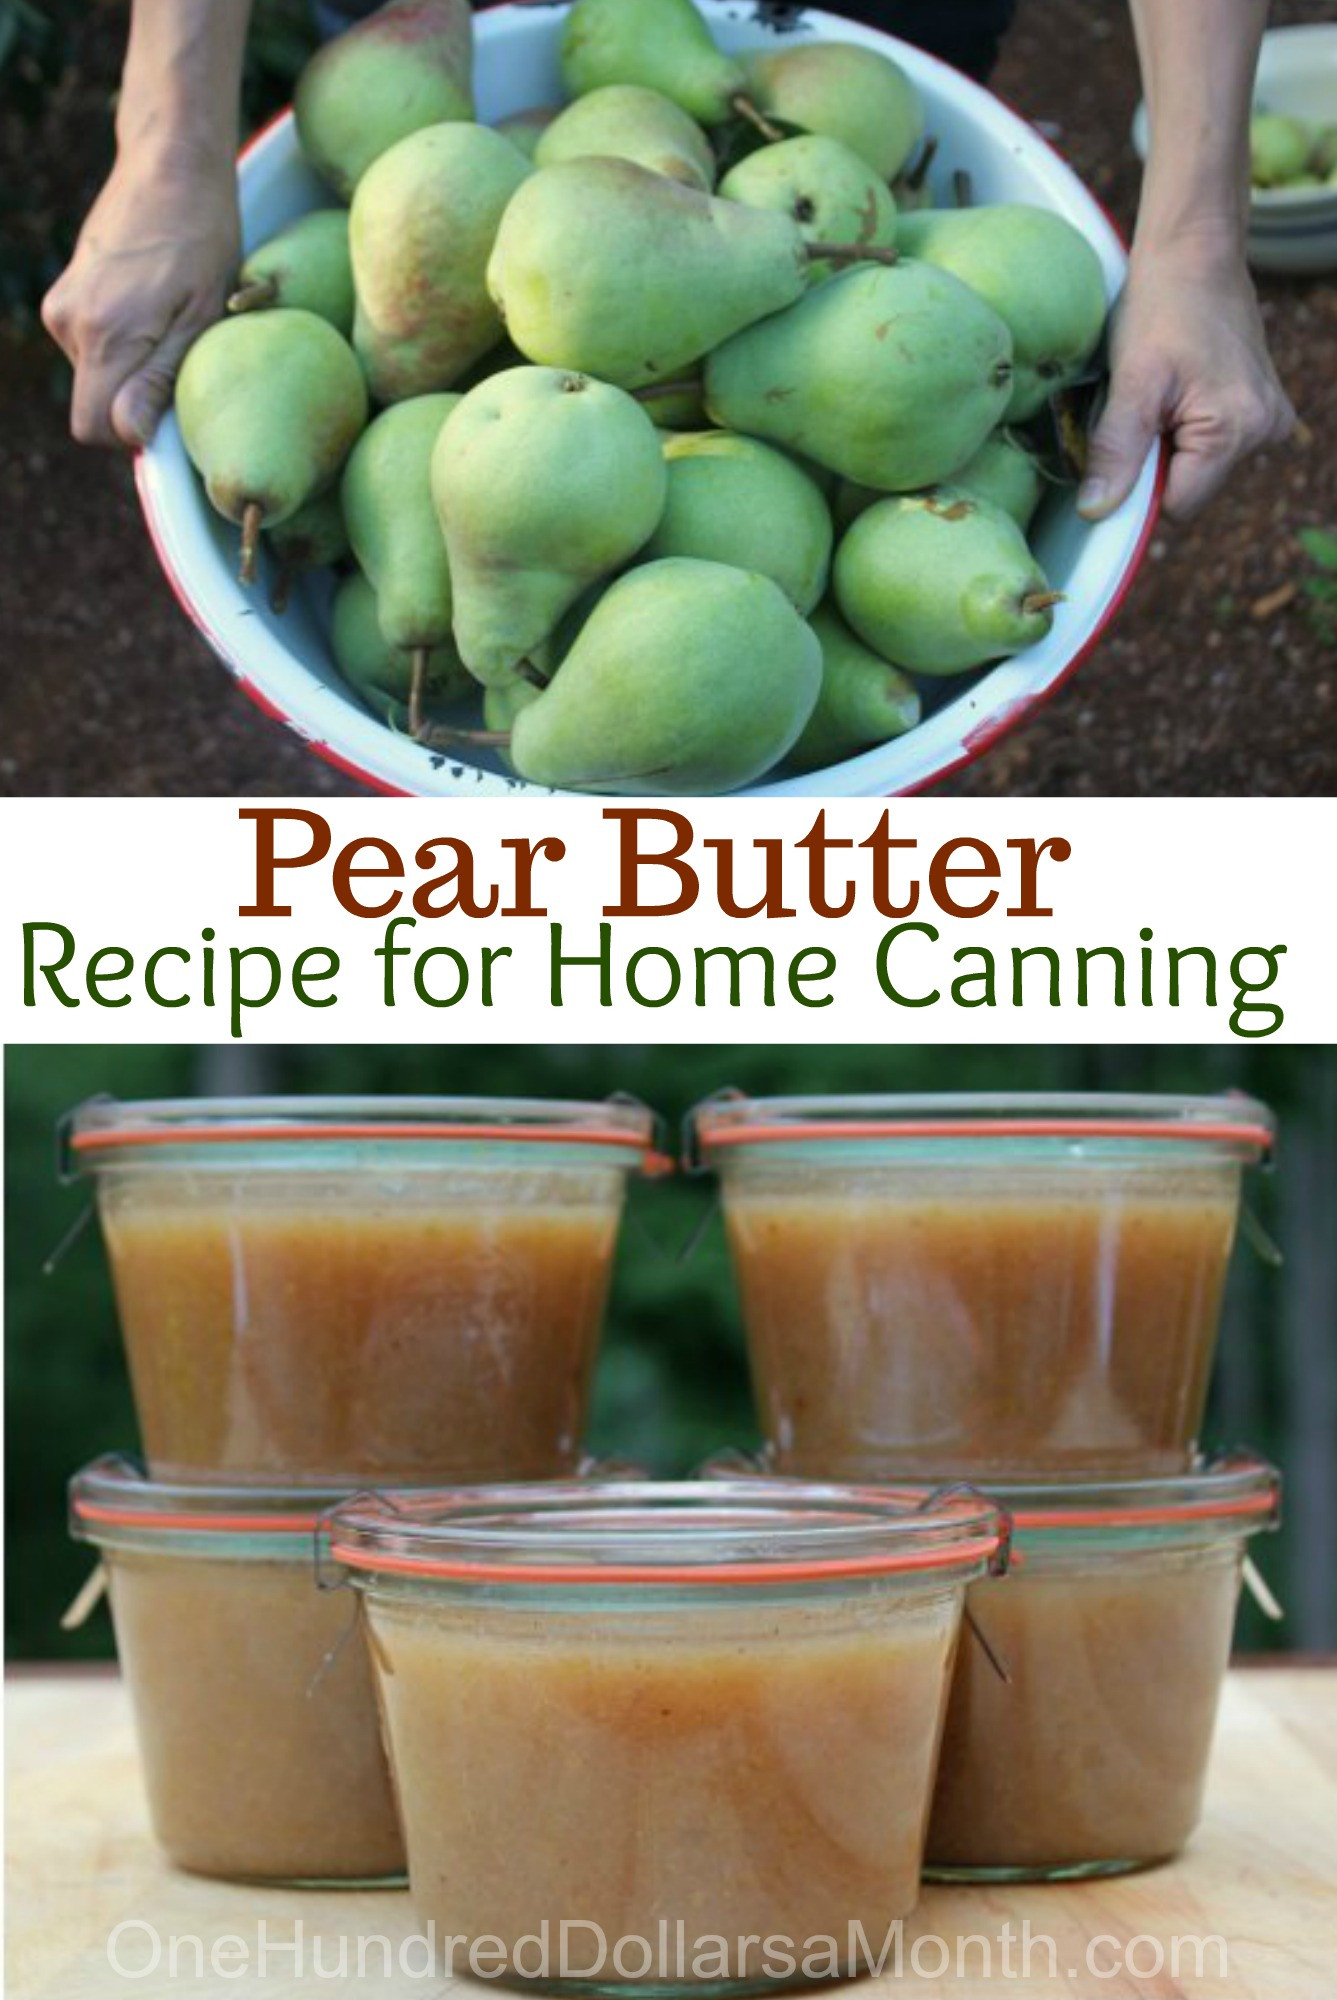 Pear Recipes For Canning  Pear Butter Recipe Canning 101 e Hundred Dollars a Month